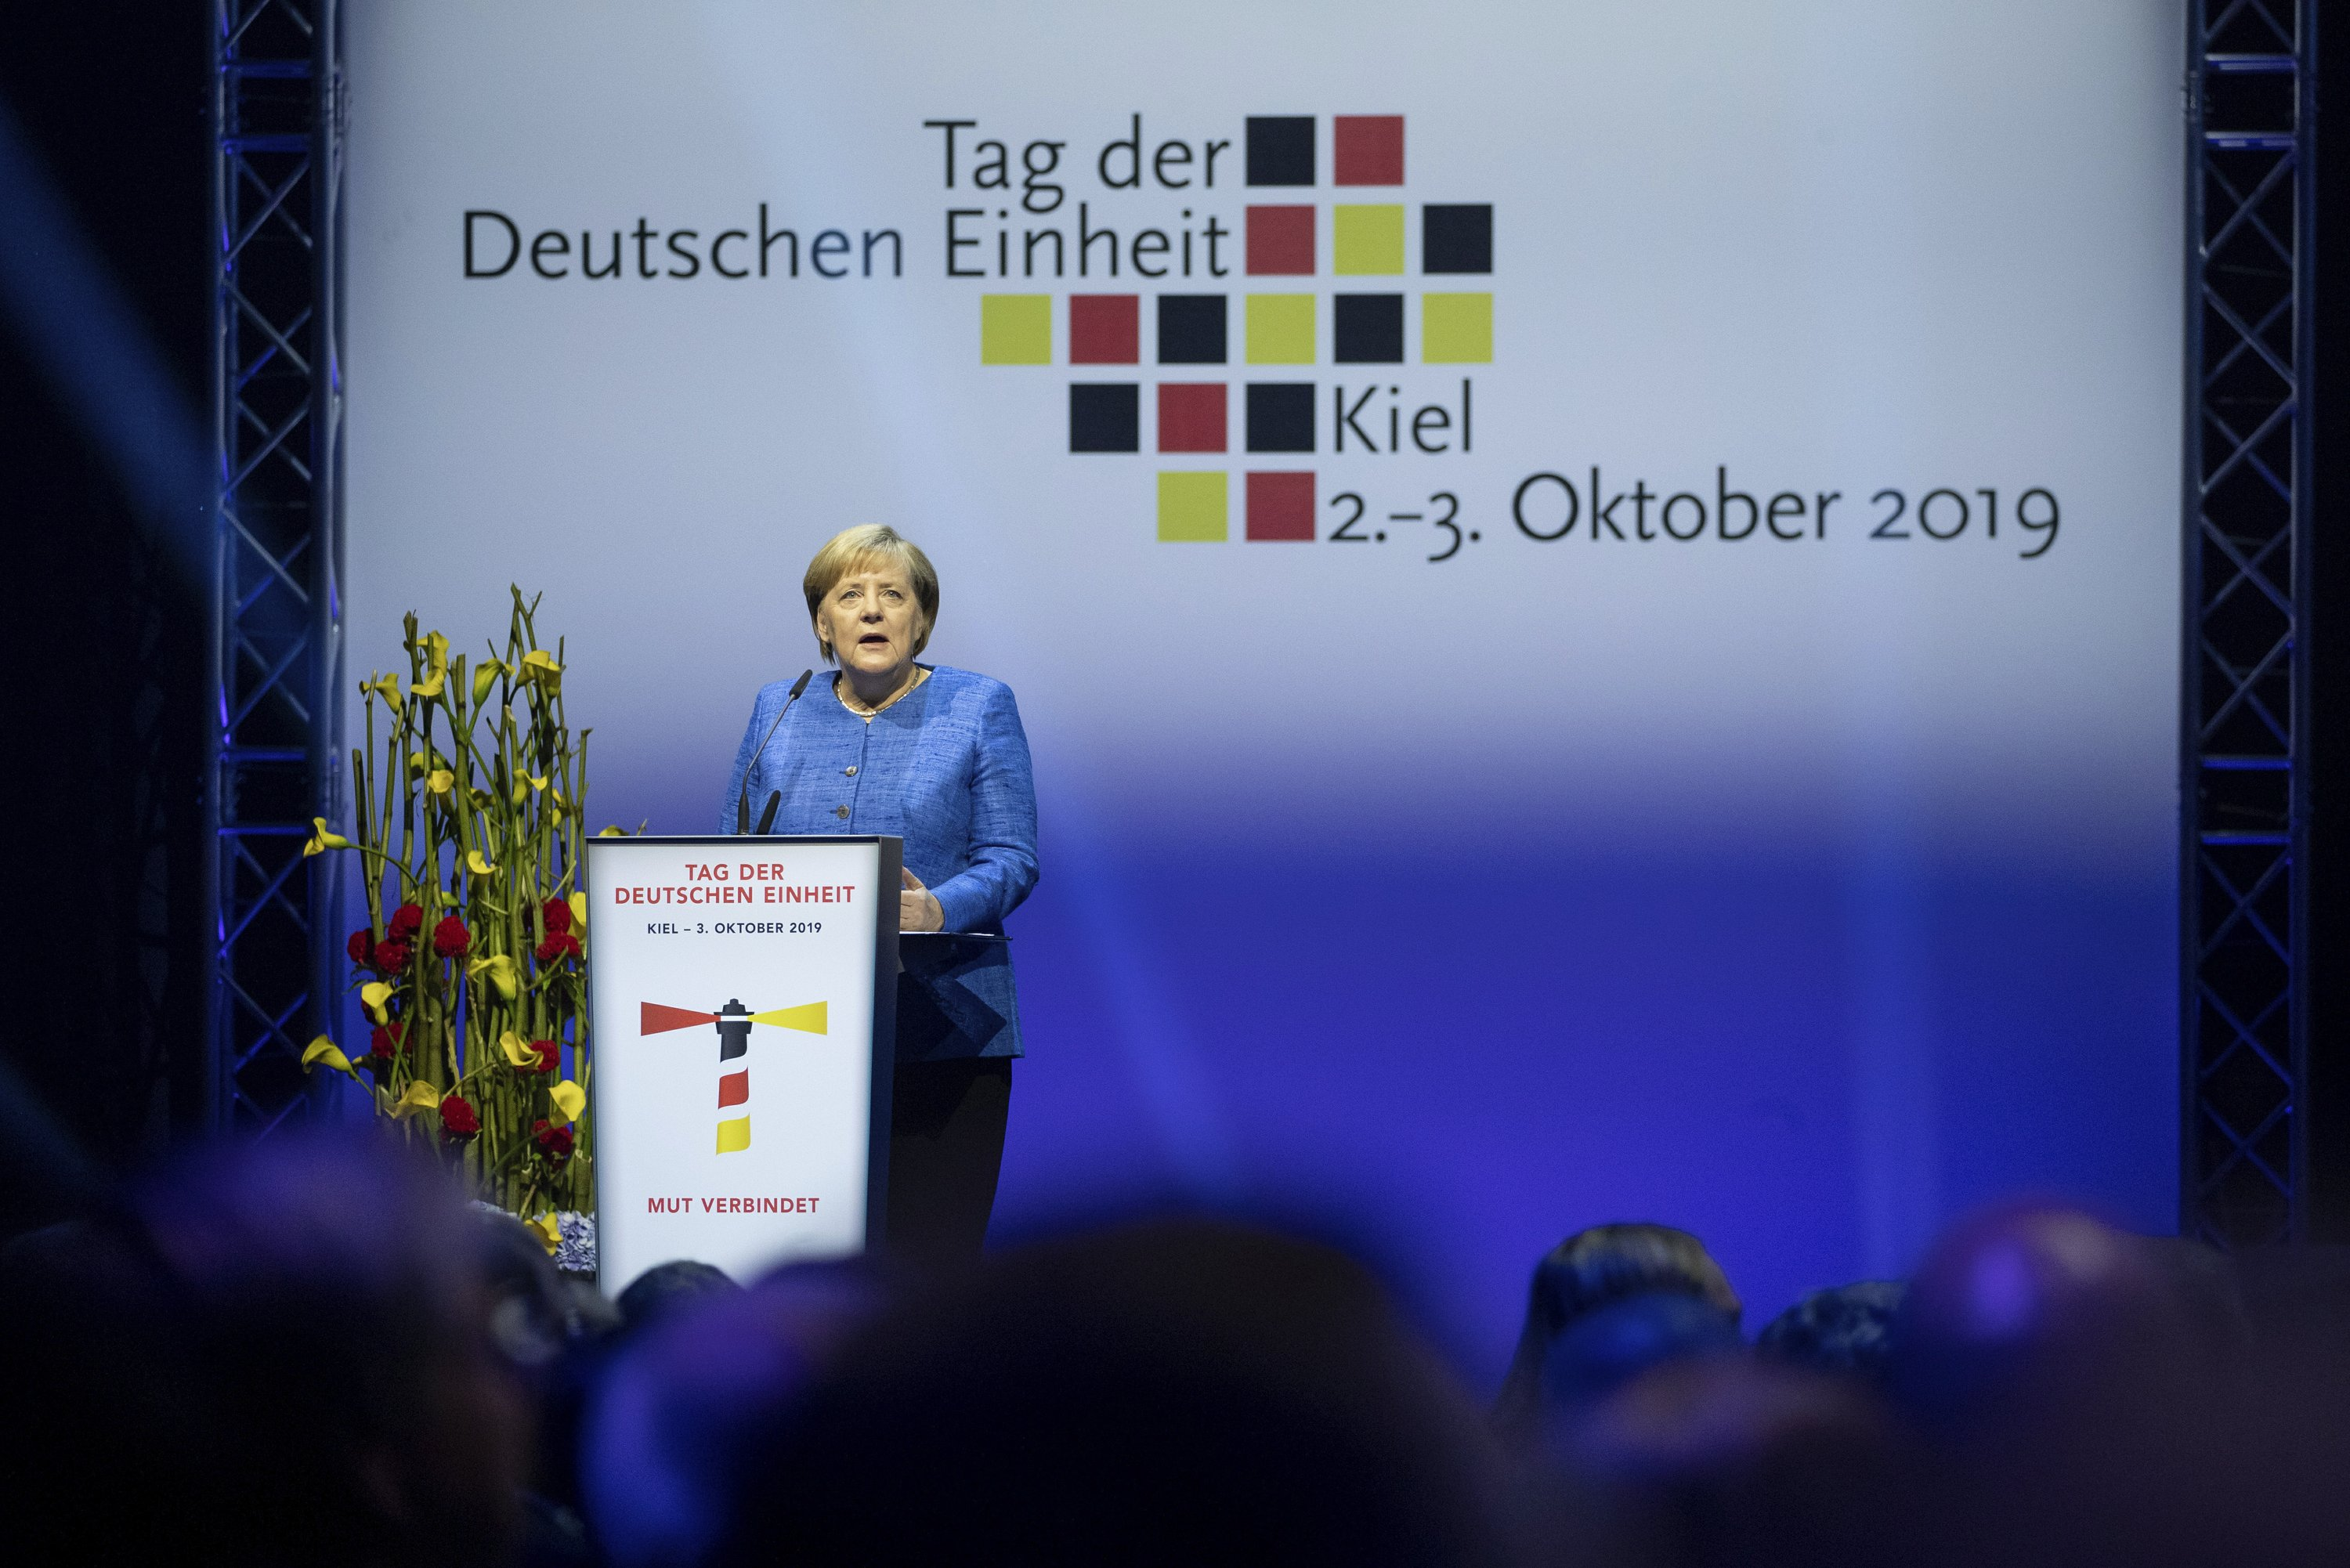 Merkel: German reunification is an ongoing process